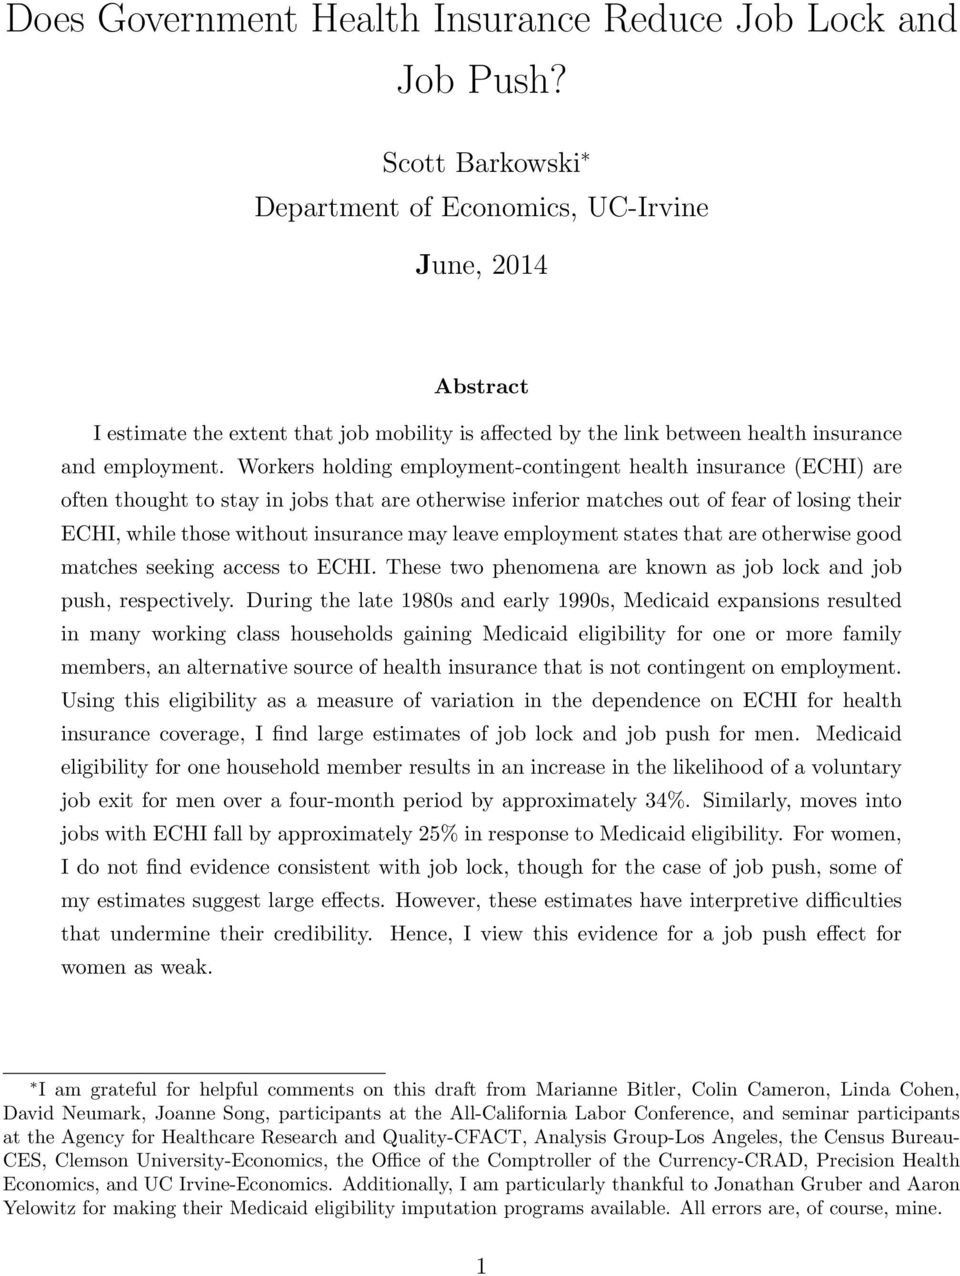 Workers holding employment-contingent health insurance (ECHI) are often thought to stay in jobs that are otherwise inferior matches out of fear of losing their ECHI, while those without insurance may